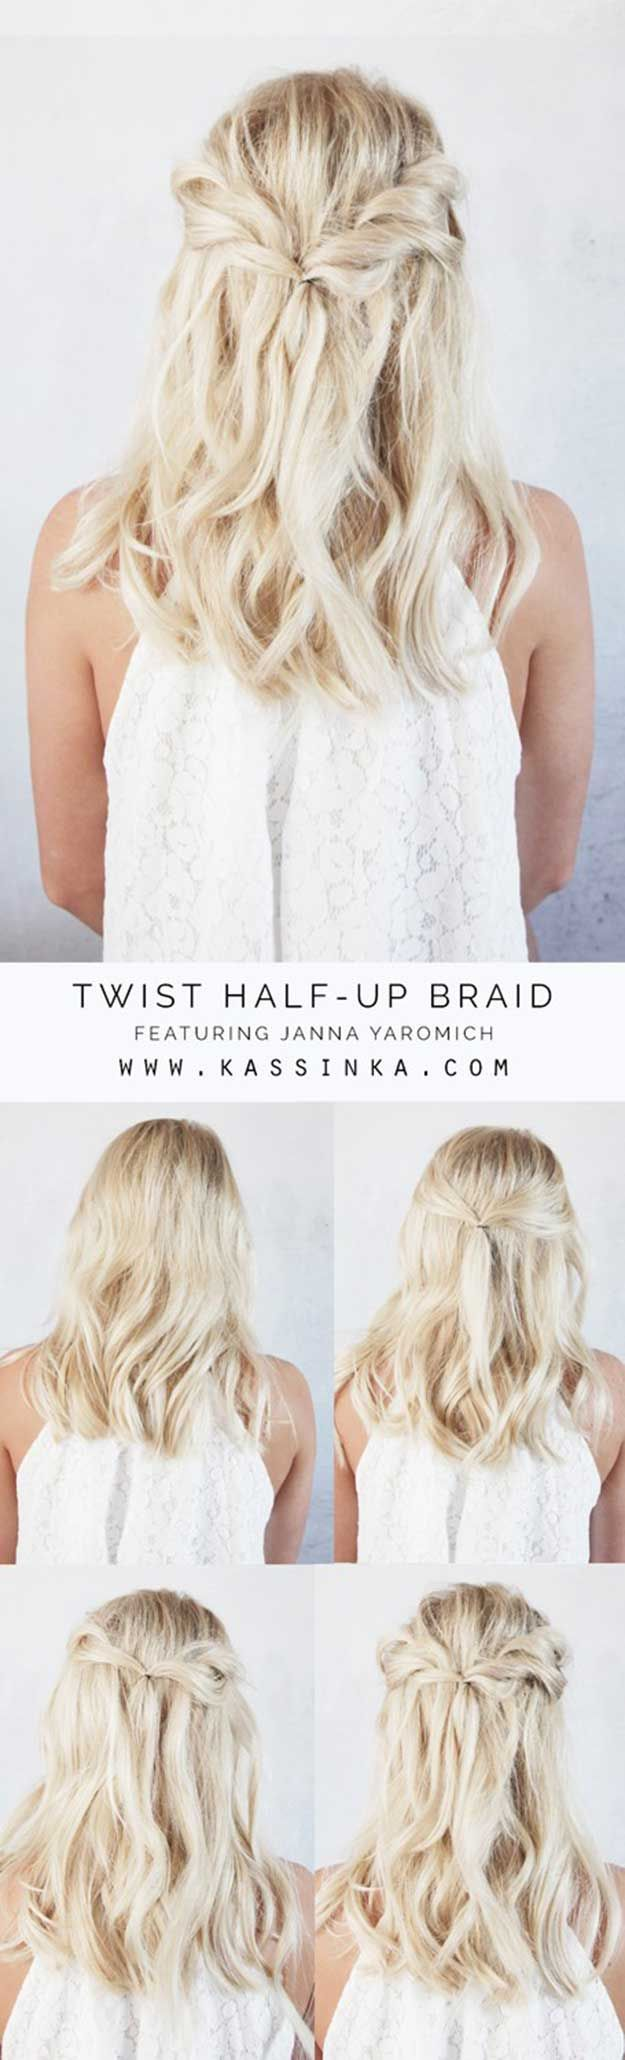 14 best Pretty images on Pinterest | Hair dos, Hair ideas and ...